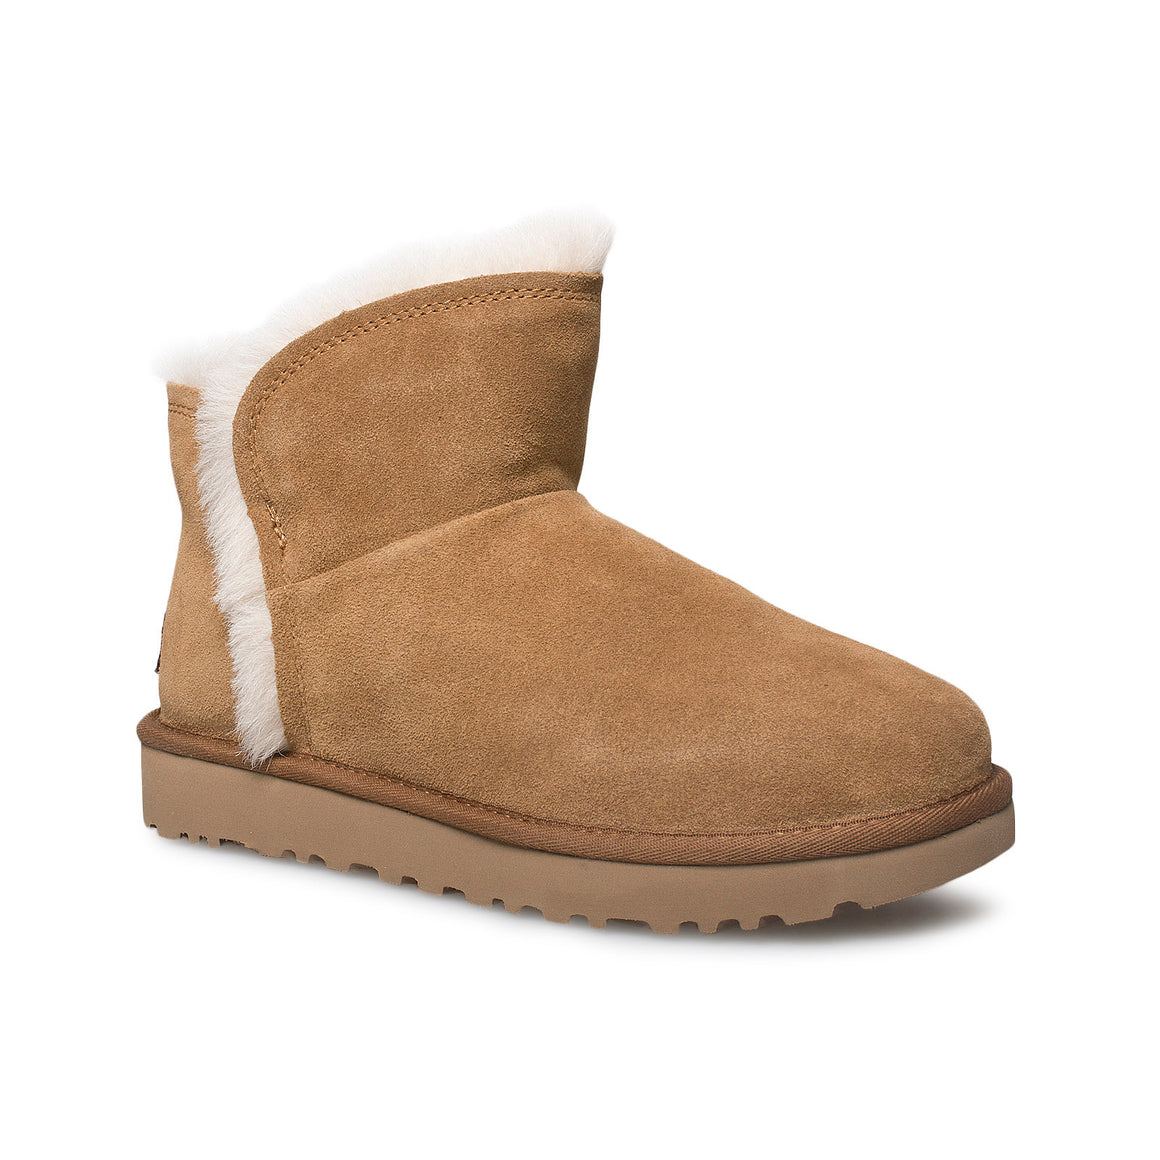 UGG Classic Mini Fluff High Low Chestnut Boots - Women's